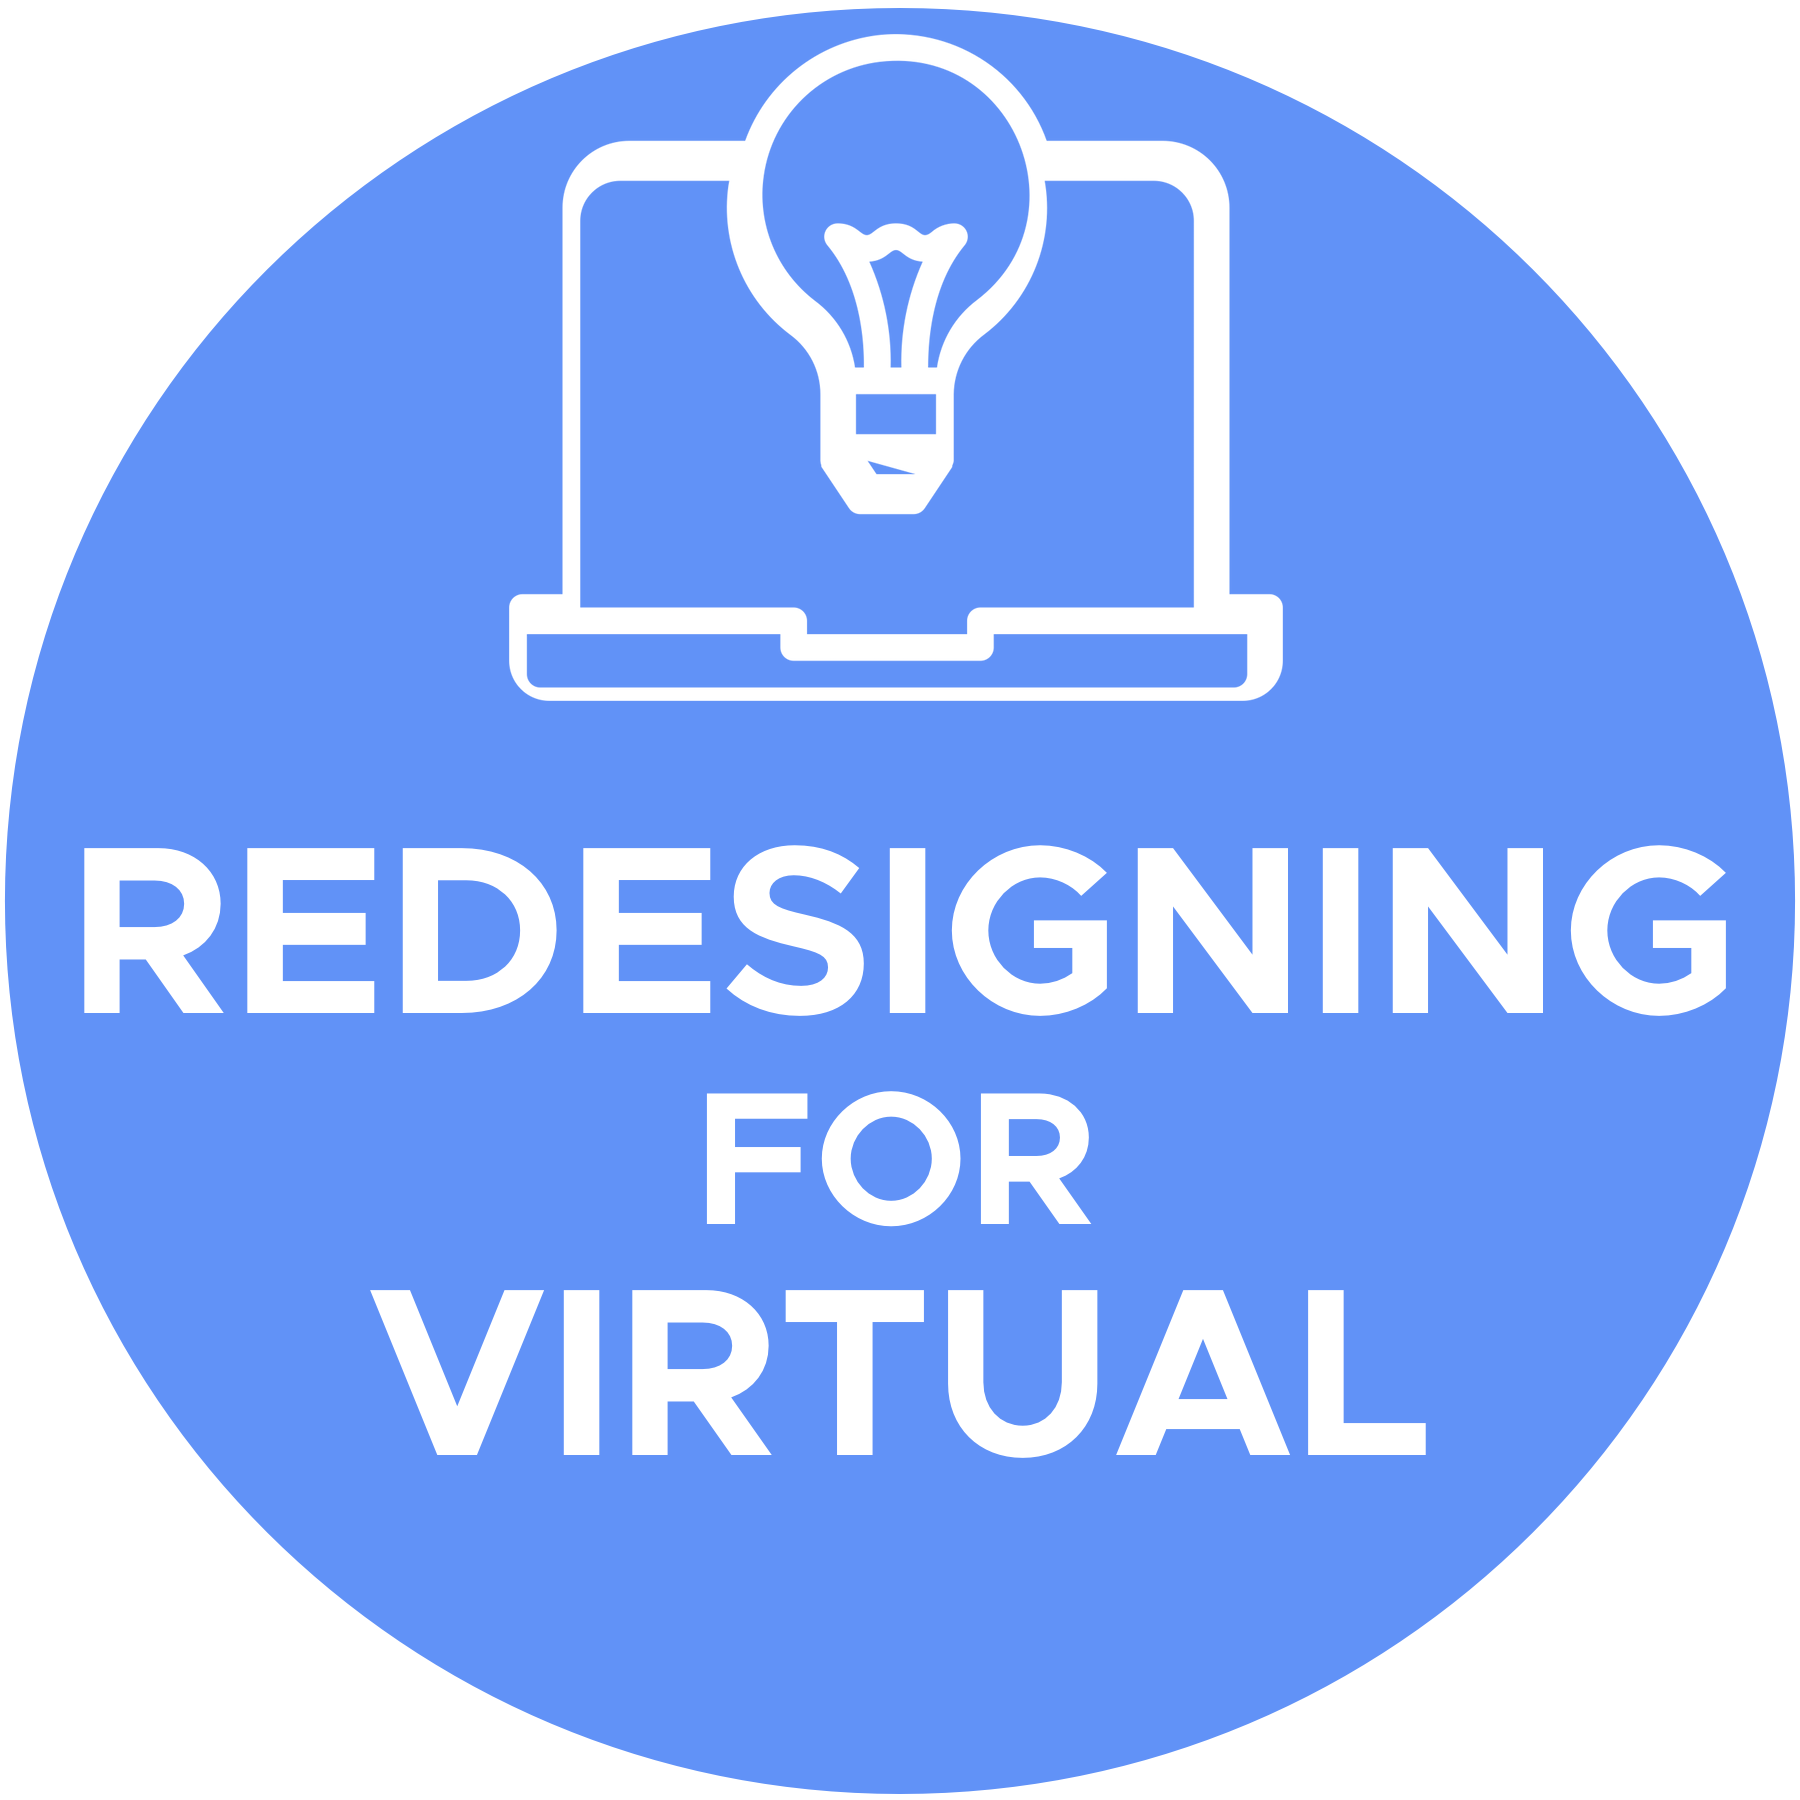 Redesigning for Virtual